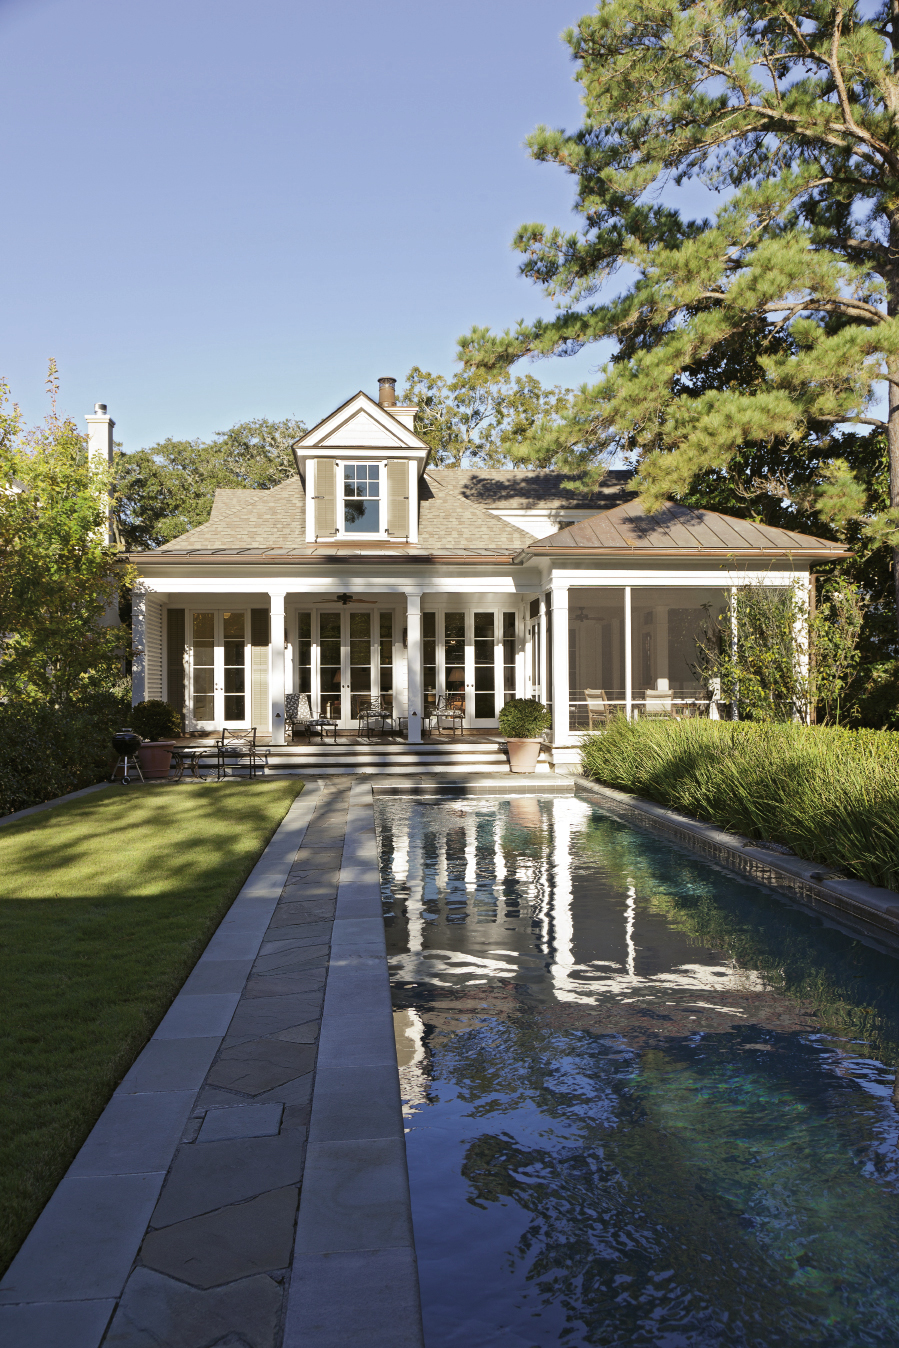 The lawn and pool area are seamless extensions of the house, which was designed by Dufford Young Architects.